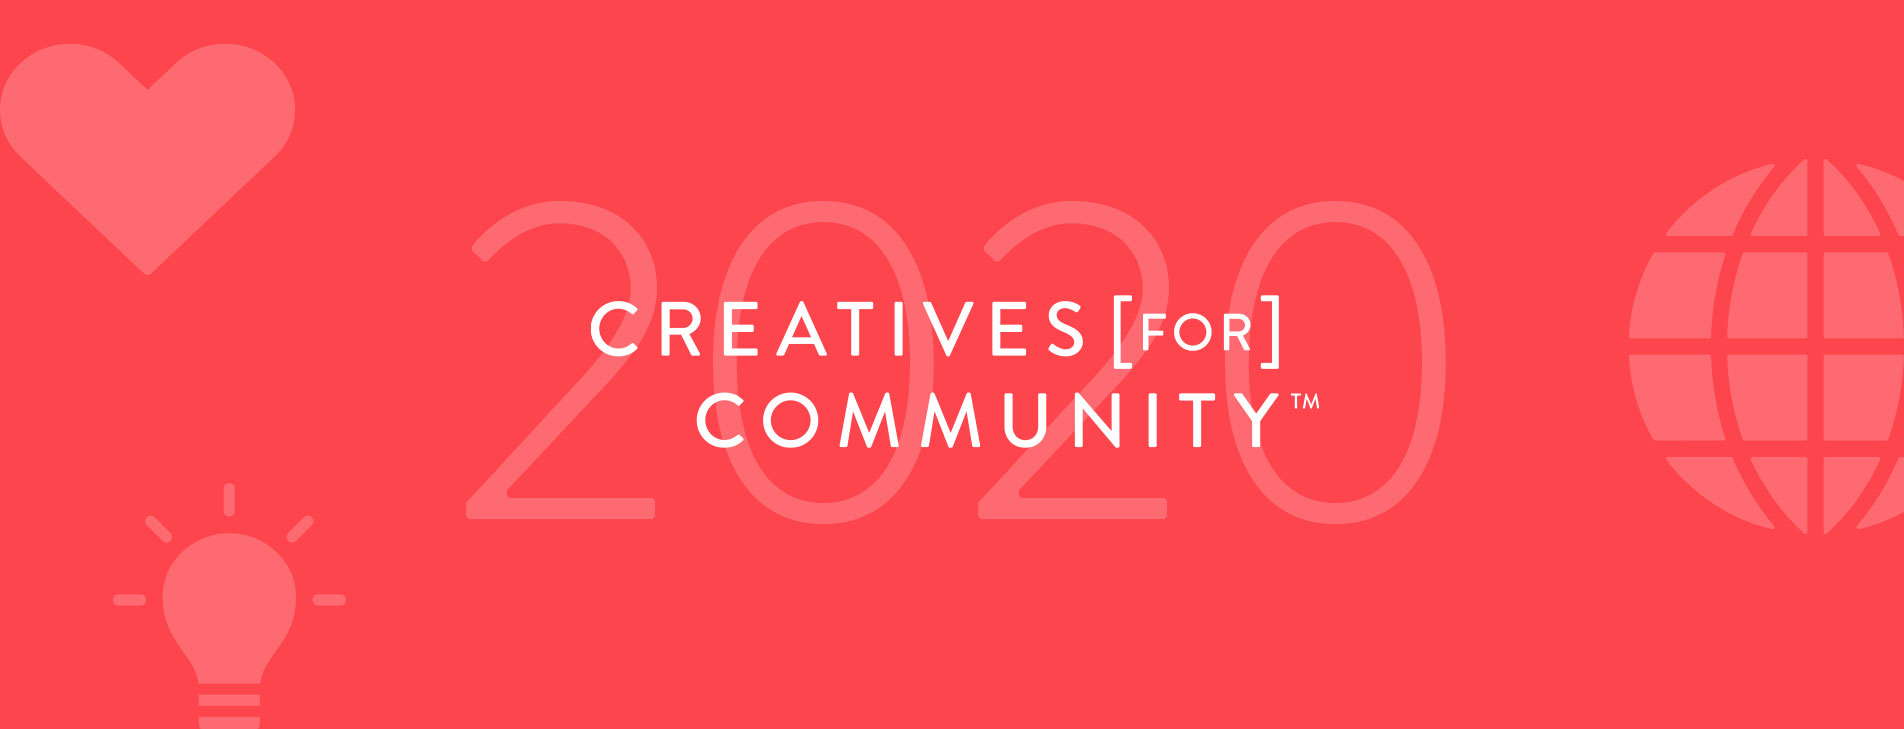 Creatives for Community 2020 Header